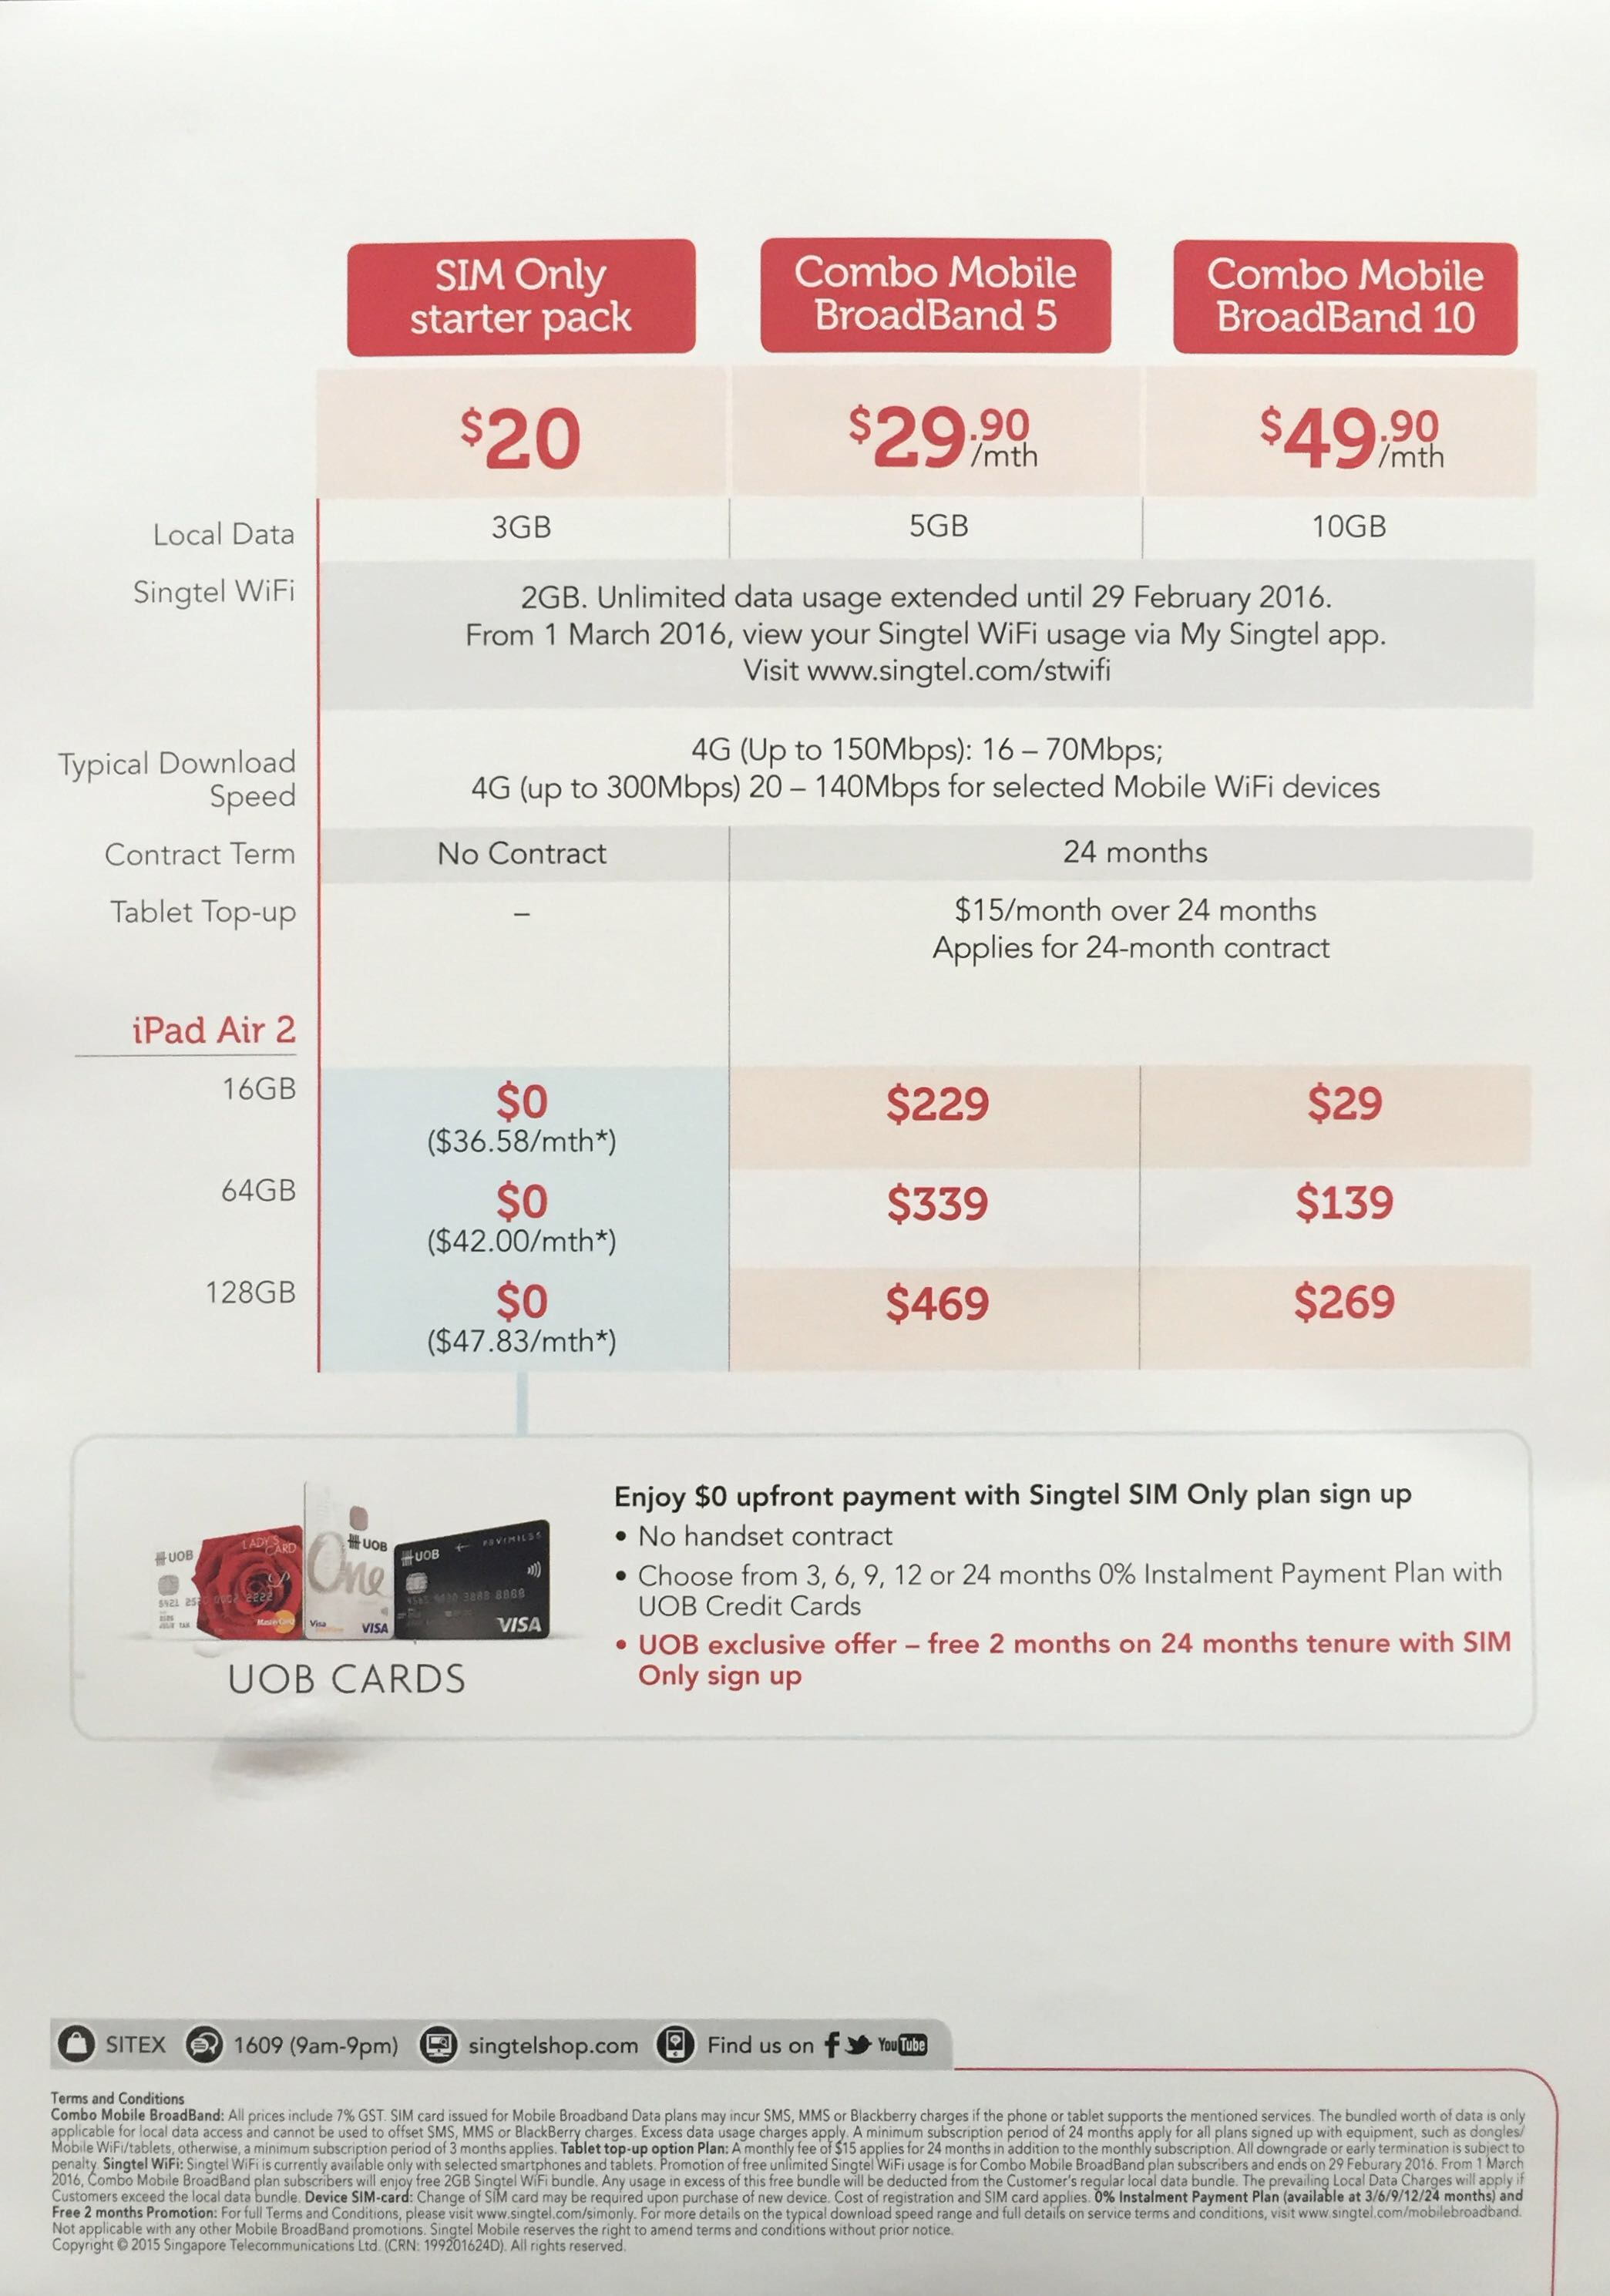 Singtel @ SITEX 2015 - iPad Air 2 Data Plan